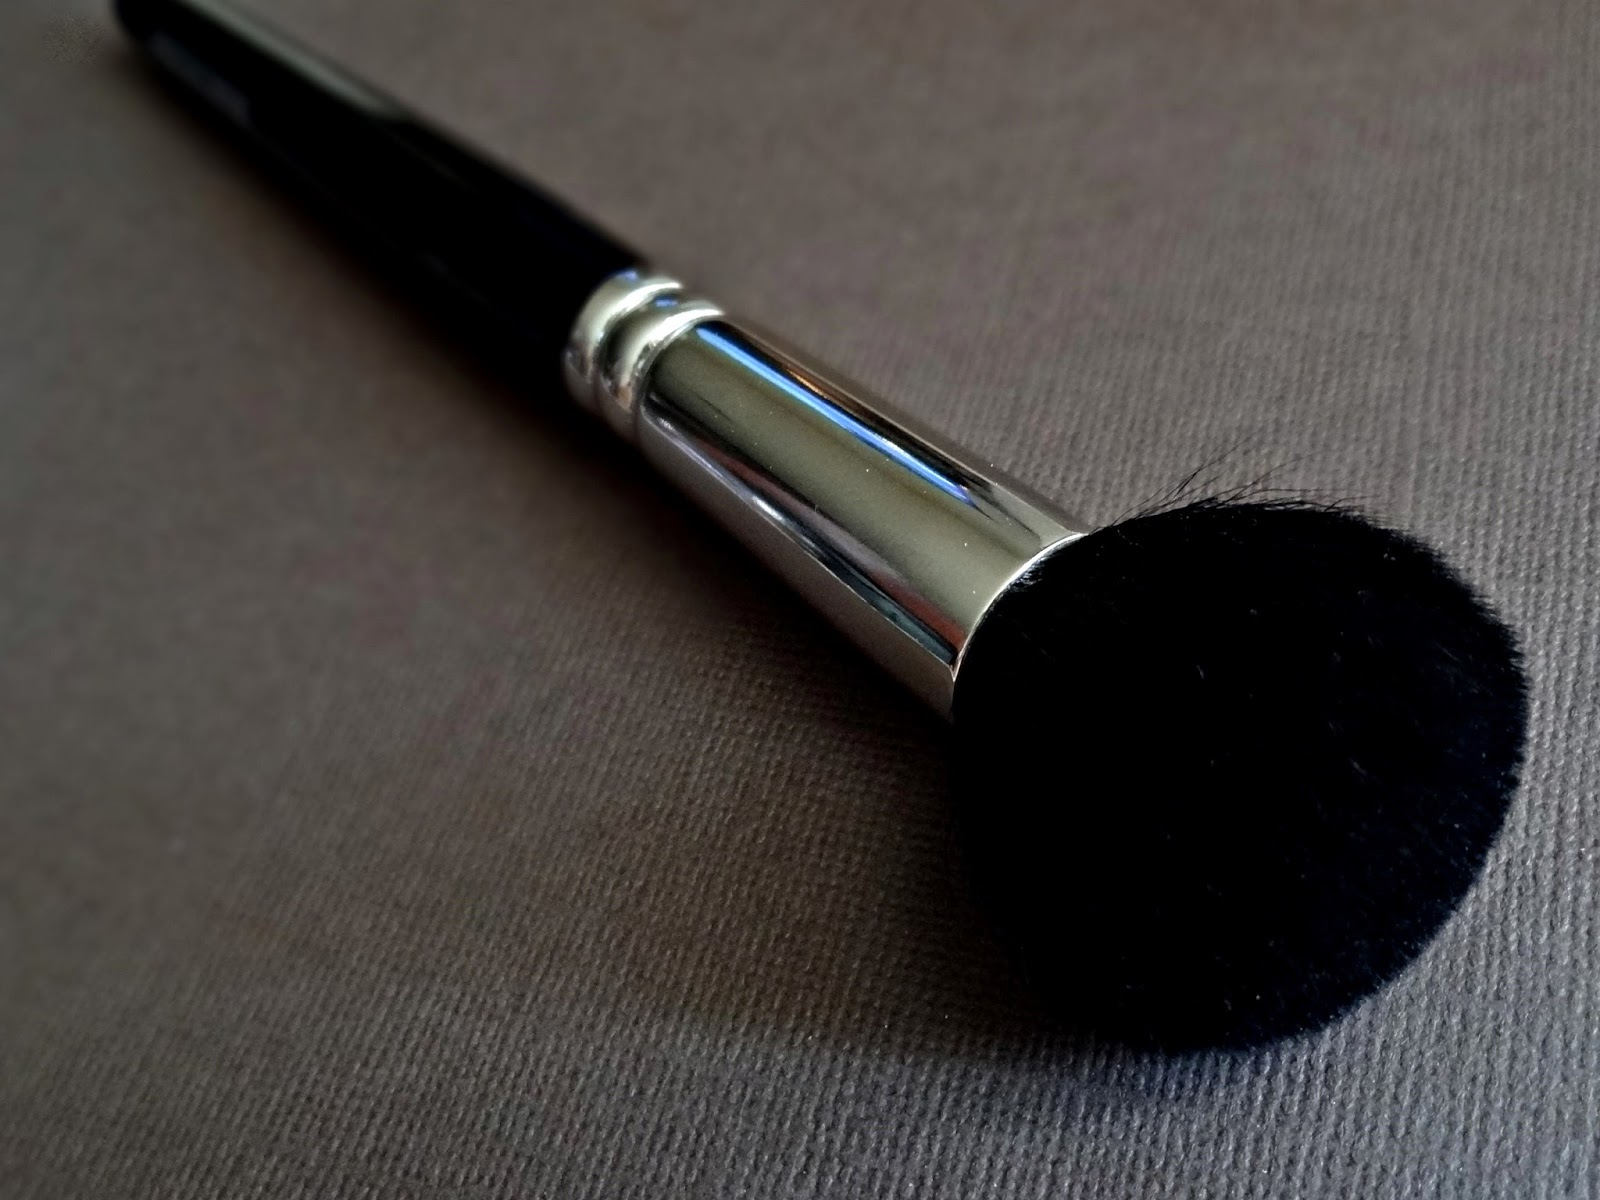 Hakuhdo 210 Blush Brush Round Review